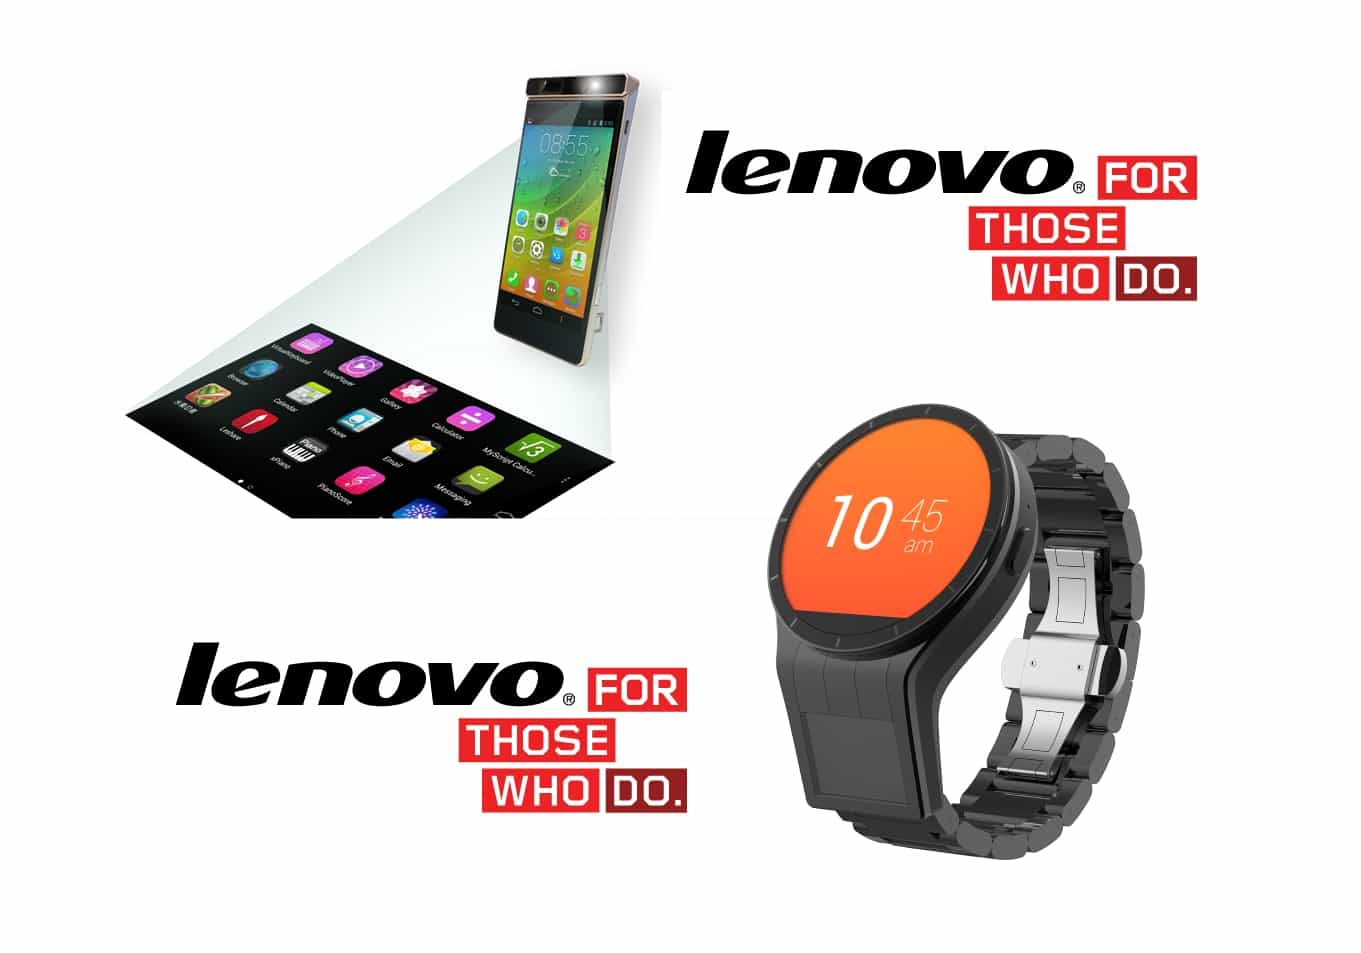 Lenovo Tech World-Smartwatch Magic View cu doua ecrane si Smartphone SmartCasta cu video proiector